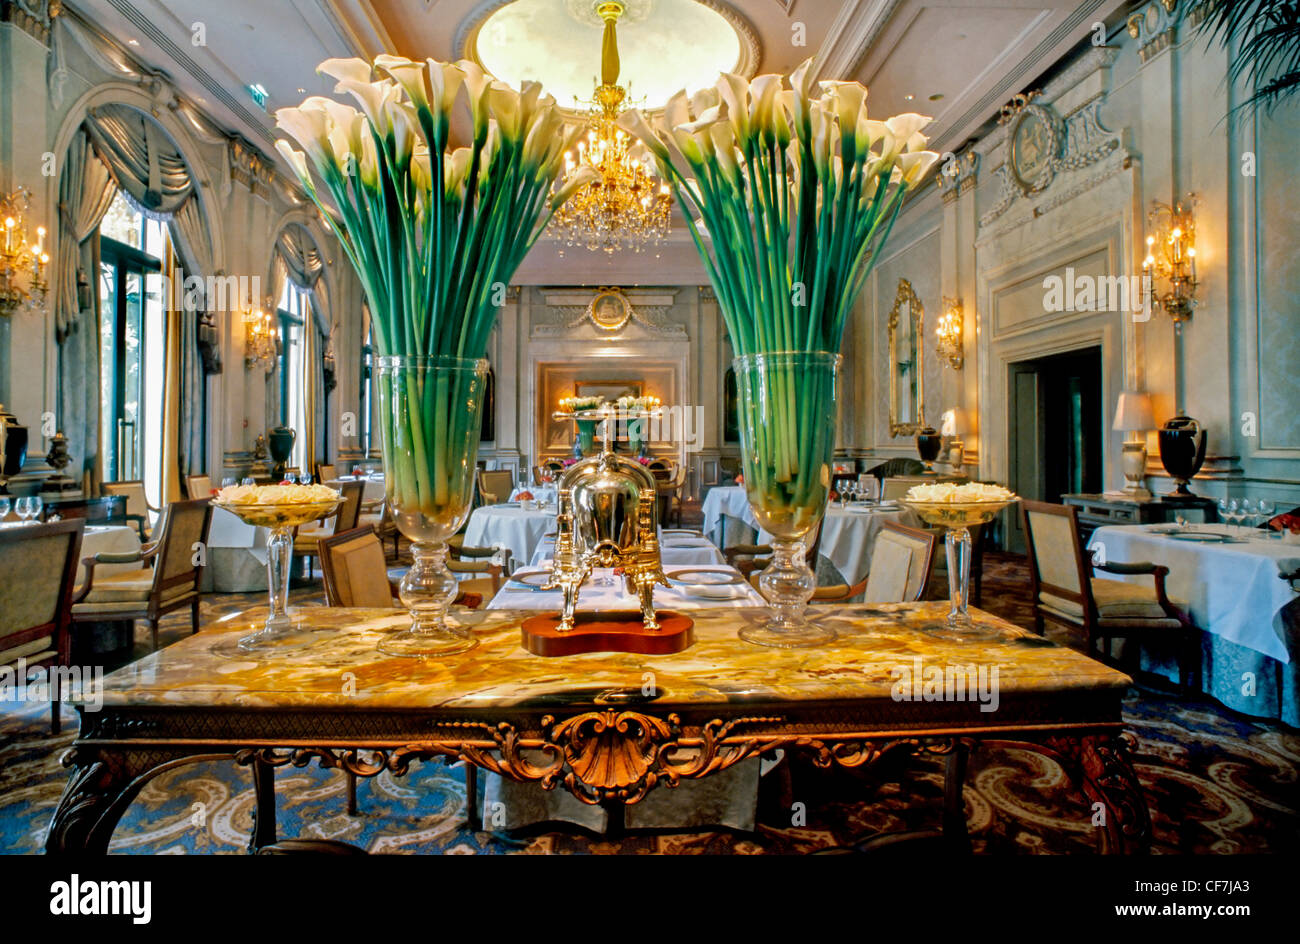 France paris fancy french restaurant interior decor le for Cuisine francaise decoration